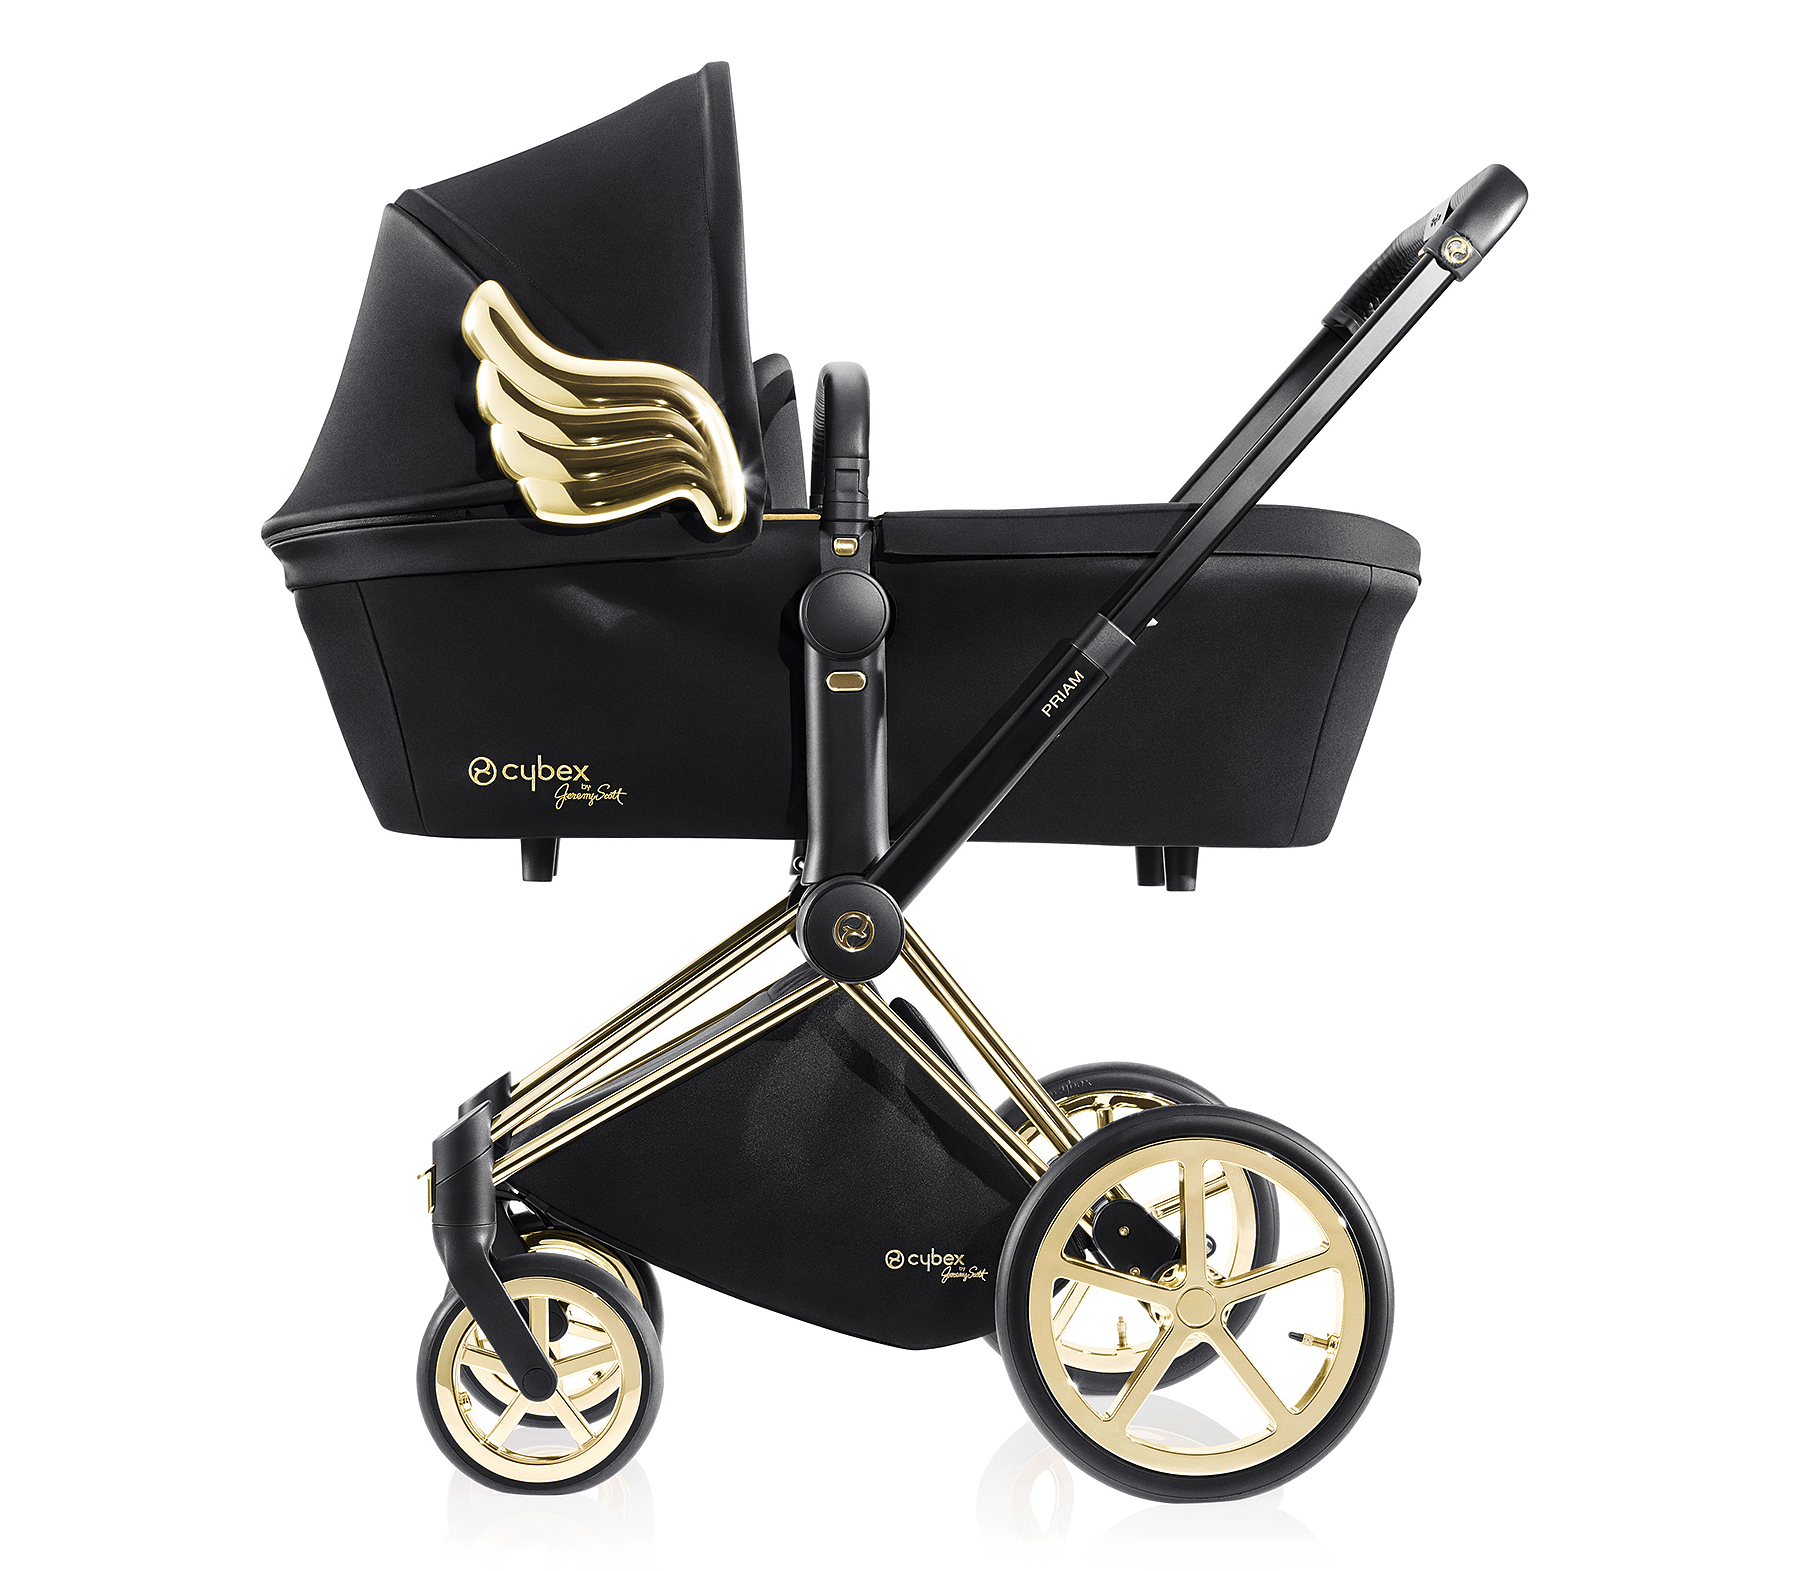 Nicky Hiltons Stroller Comes Complete With Gold Angel Wings Creative Clasic Hilton 32 And Her Banking Heir Husband James Rothschild Welcomed Their Little Girl On July 8